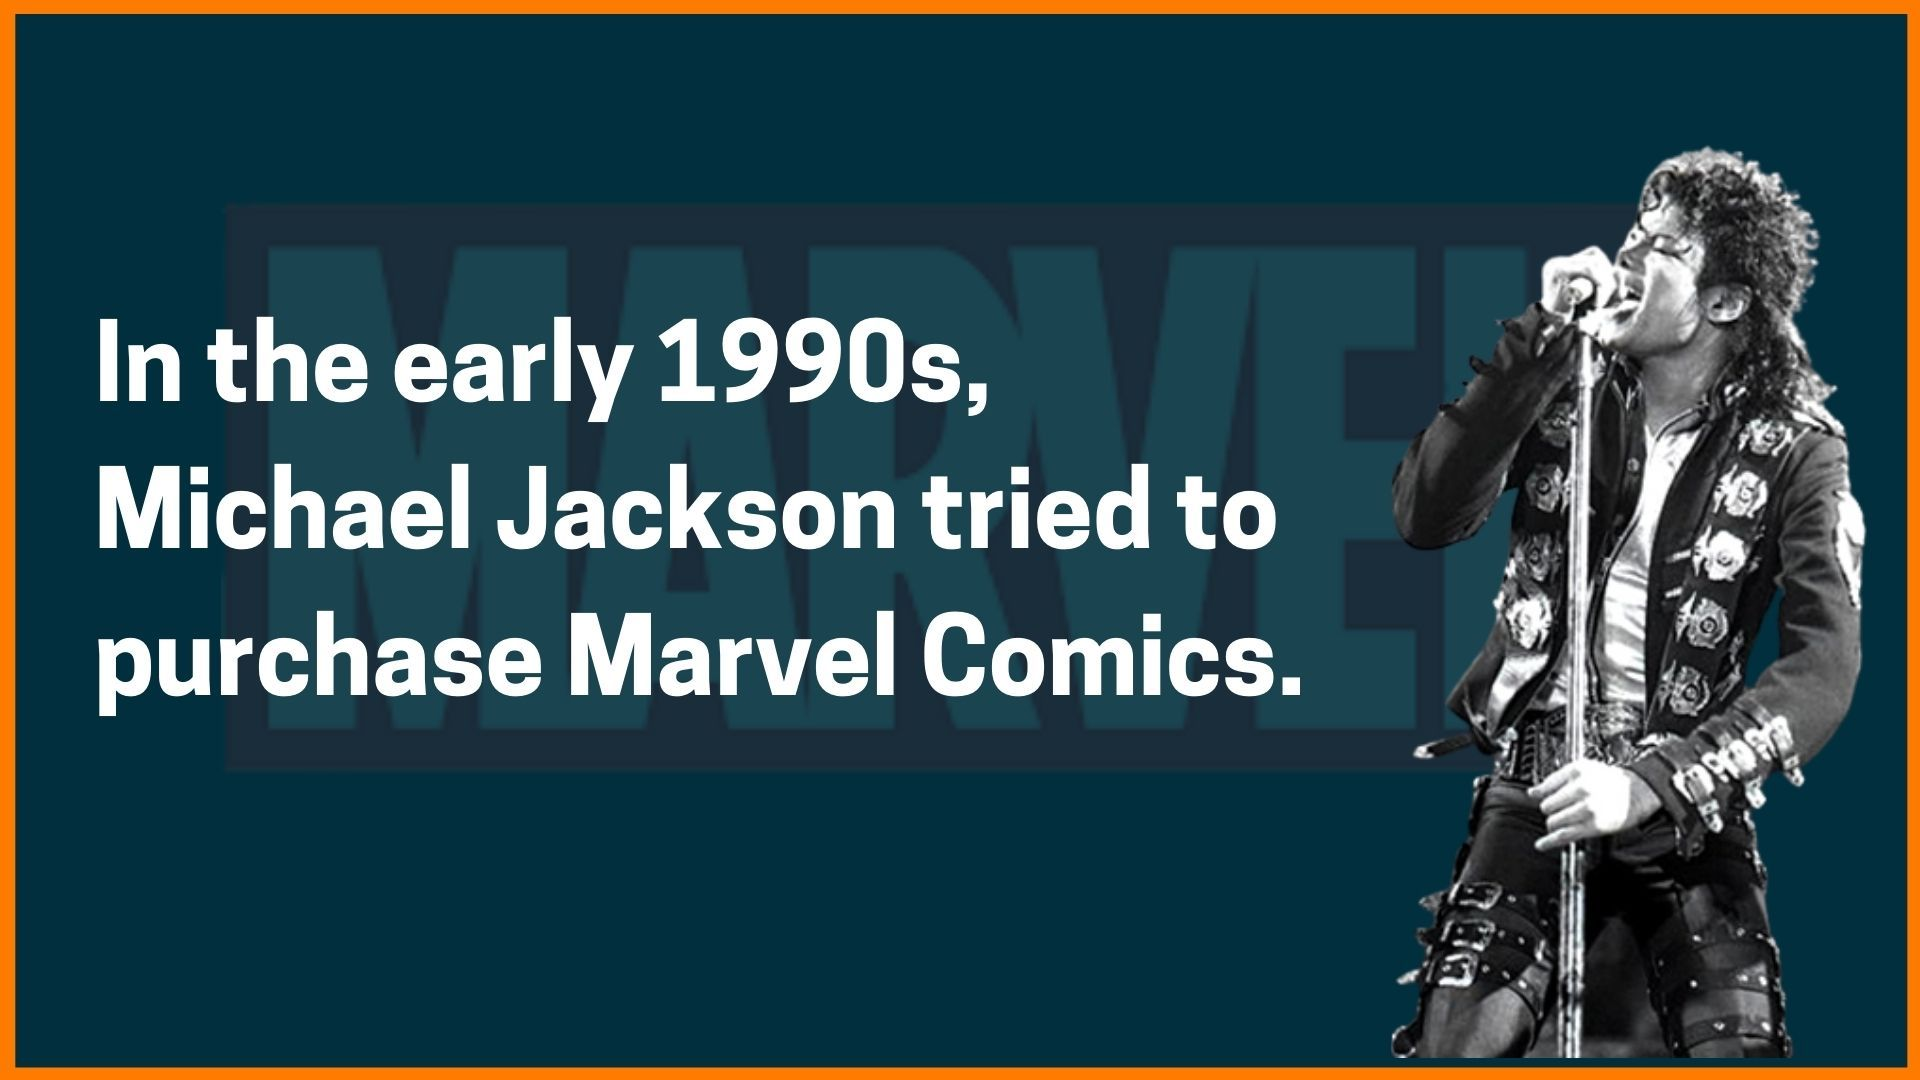 Michael Jackson tried to purchase Marvel comics